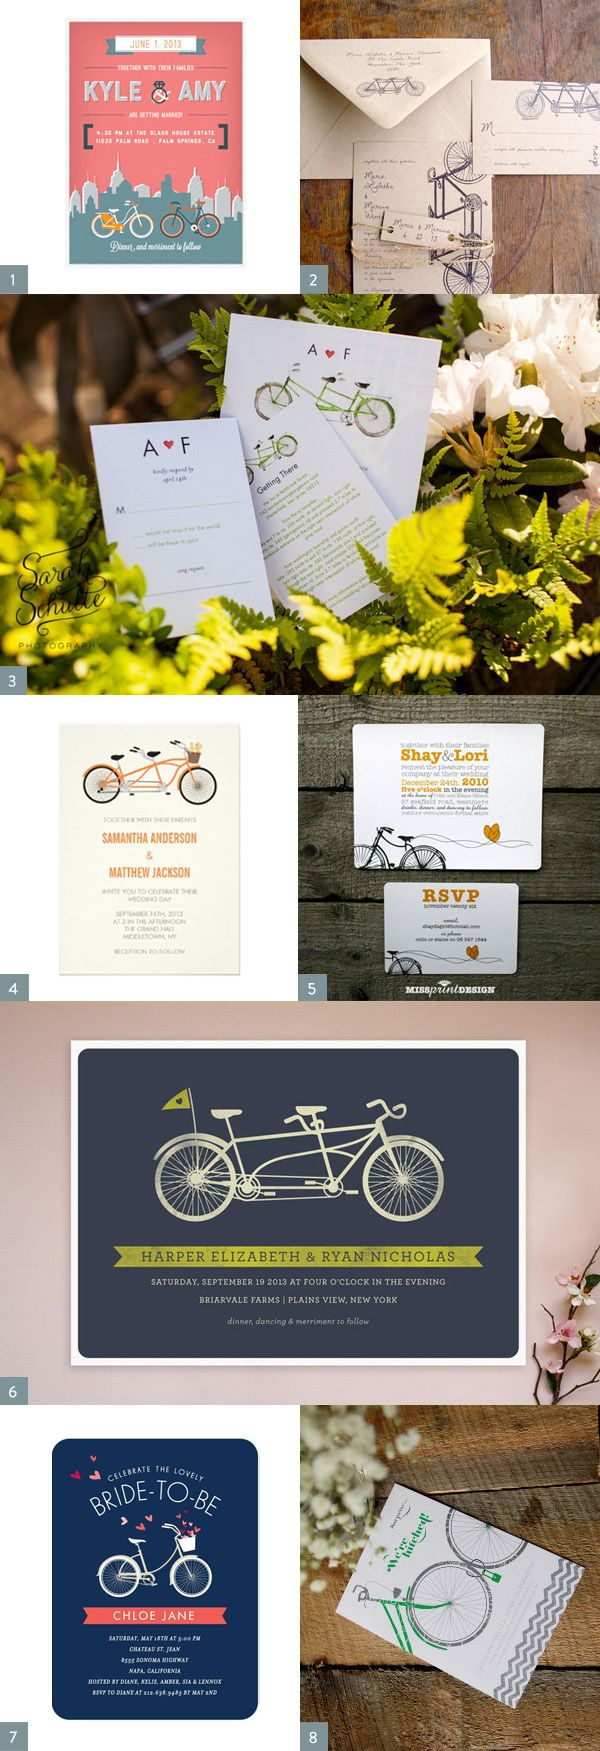 invitation letter for us vissample wedding%0A Bicycle Wedding Invitation Inspiration  Adorable